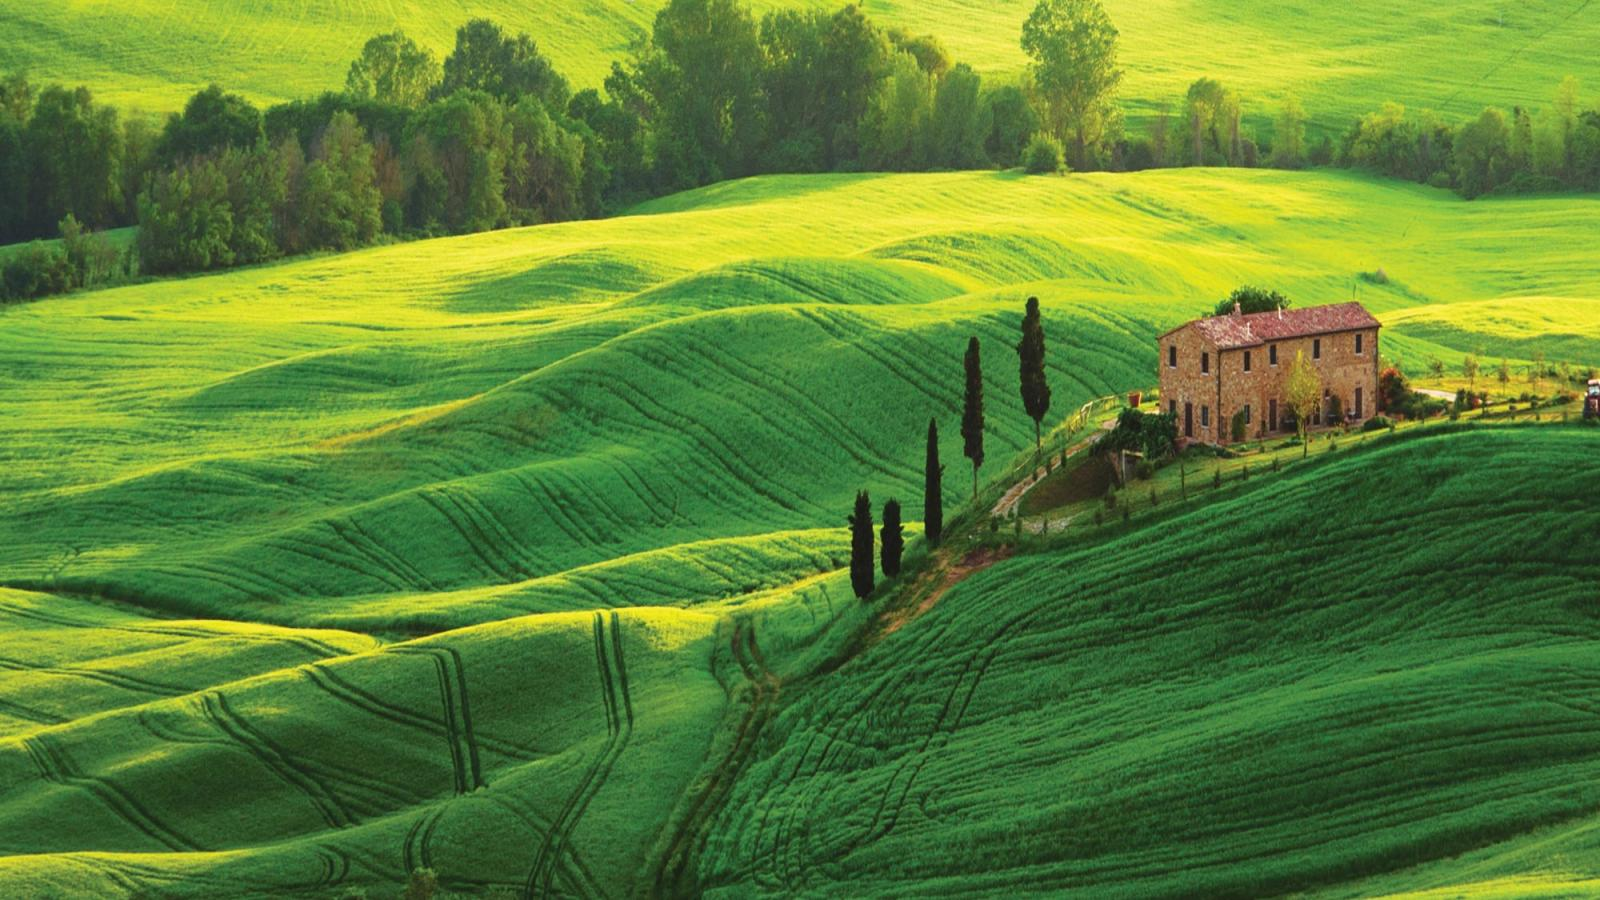 Victoria Falls Wallpapers High Resolution Tuscan Countryside Holidays Topflight Tuscany